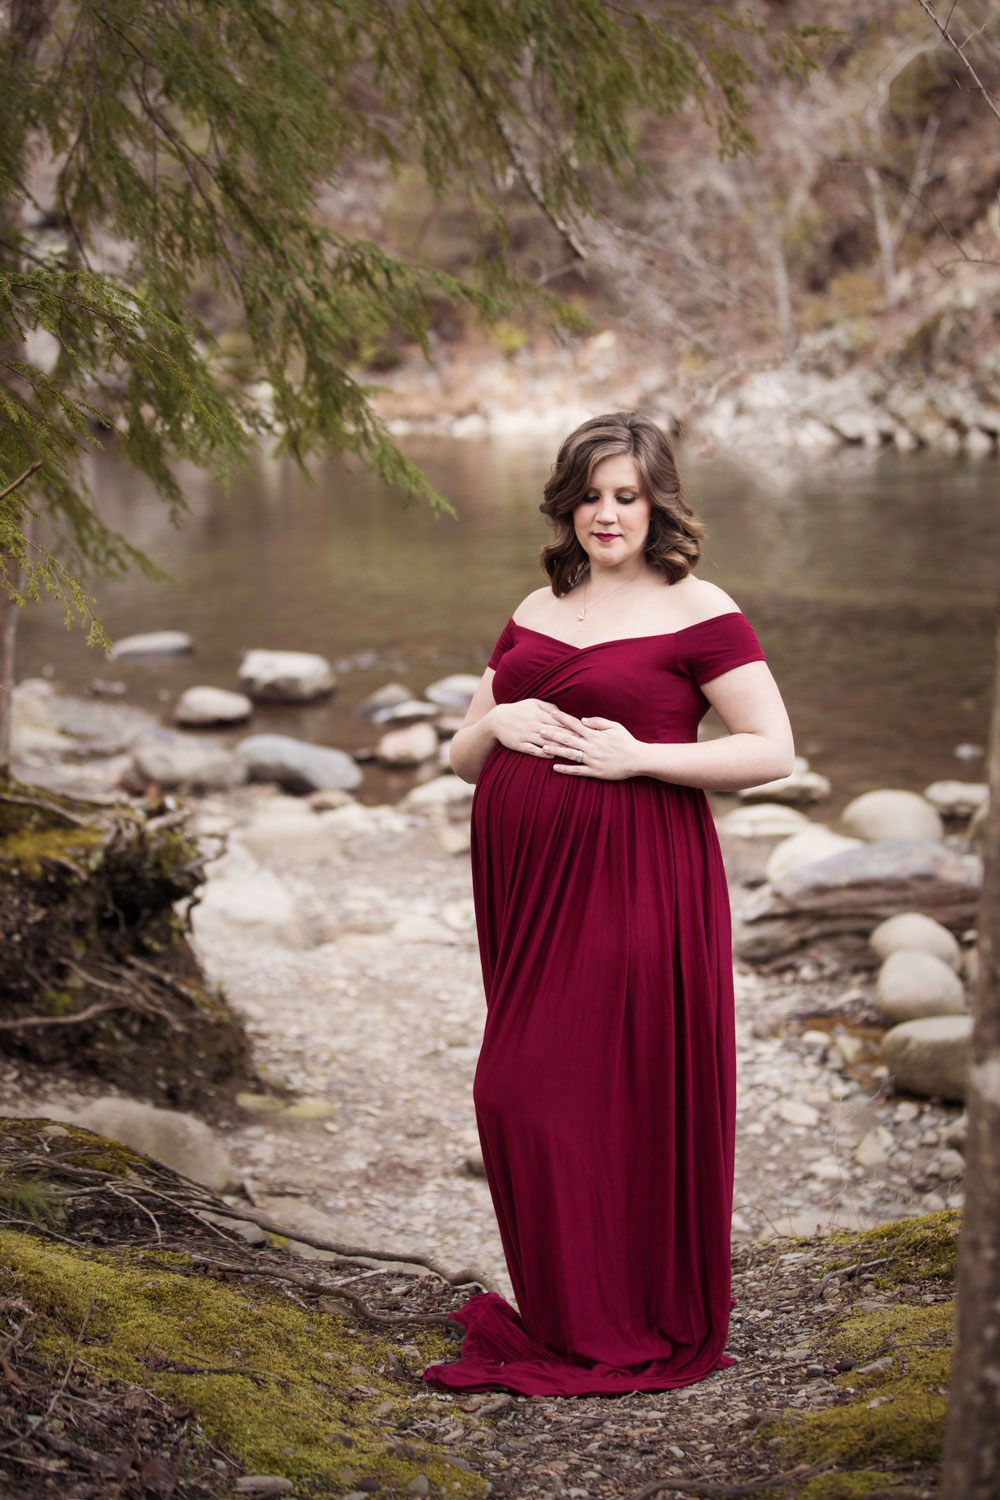 gatlinburg-maternity-river-bed-photographer.jpg